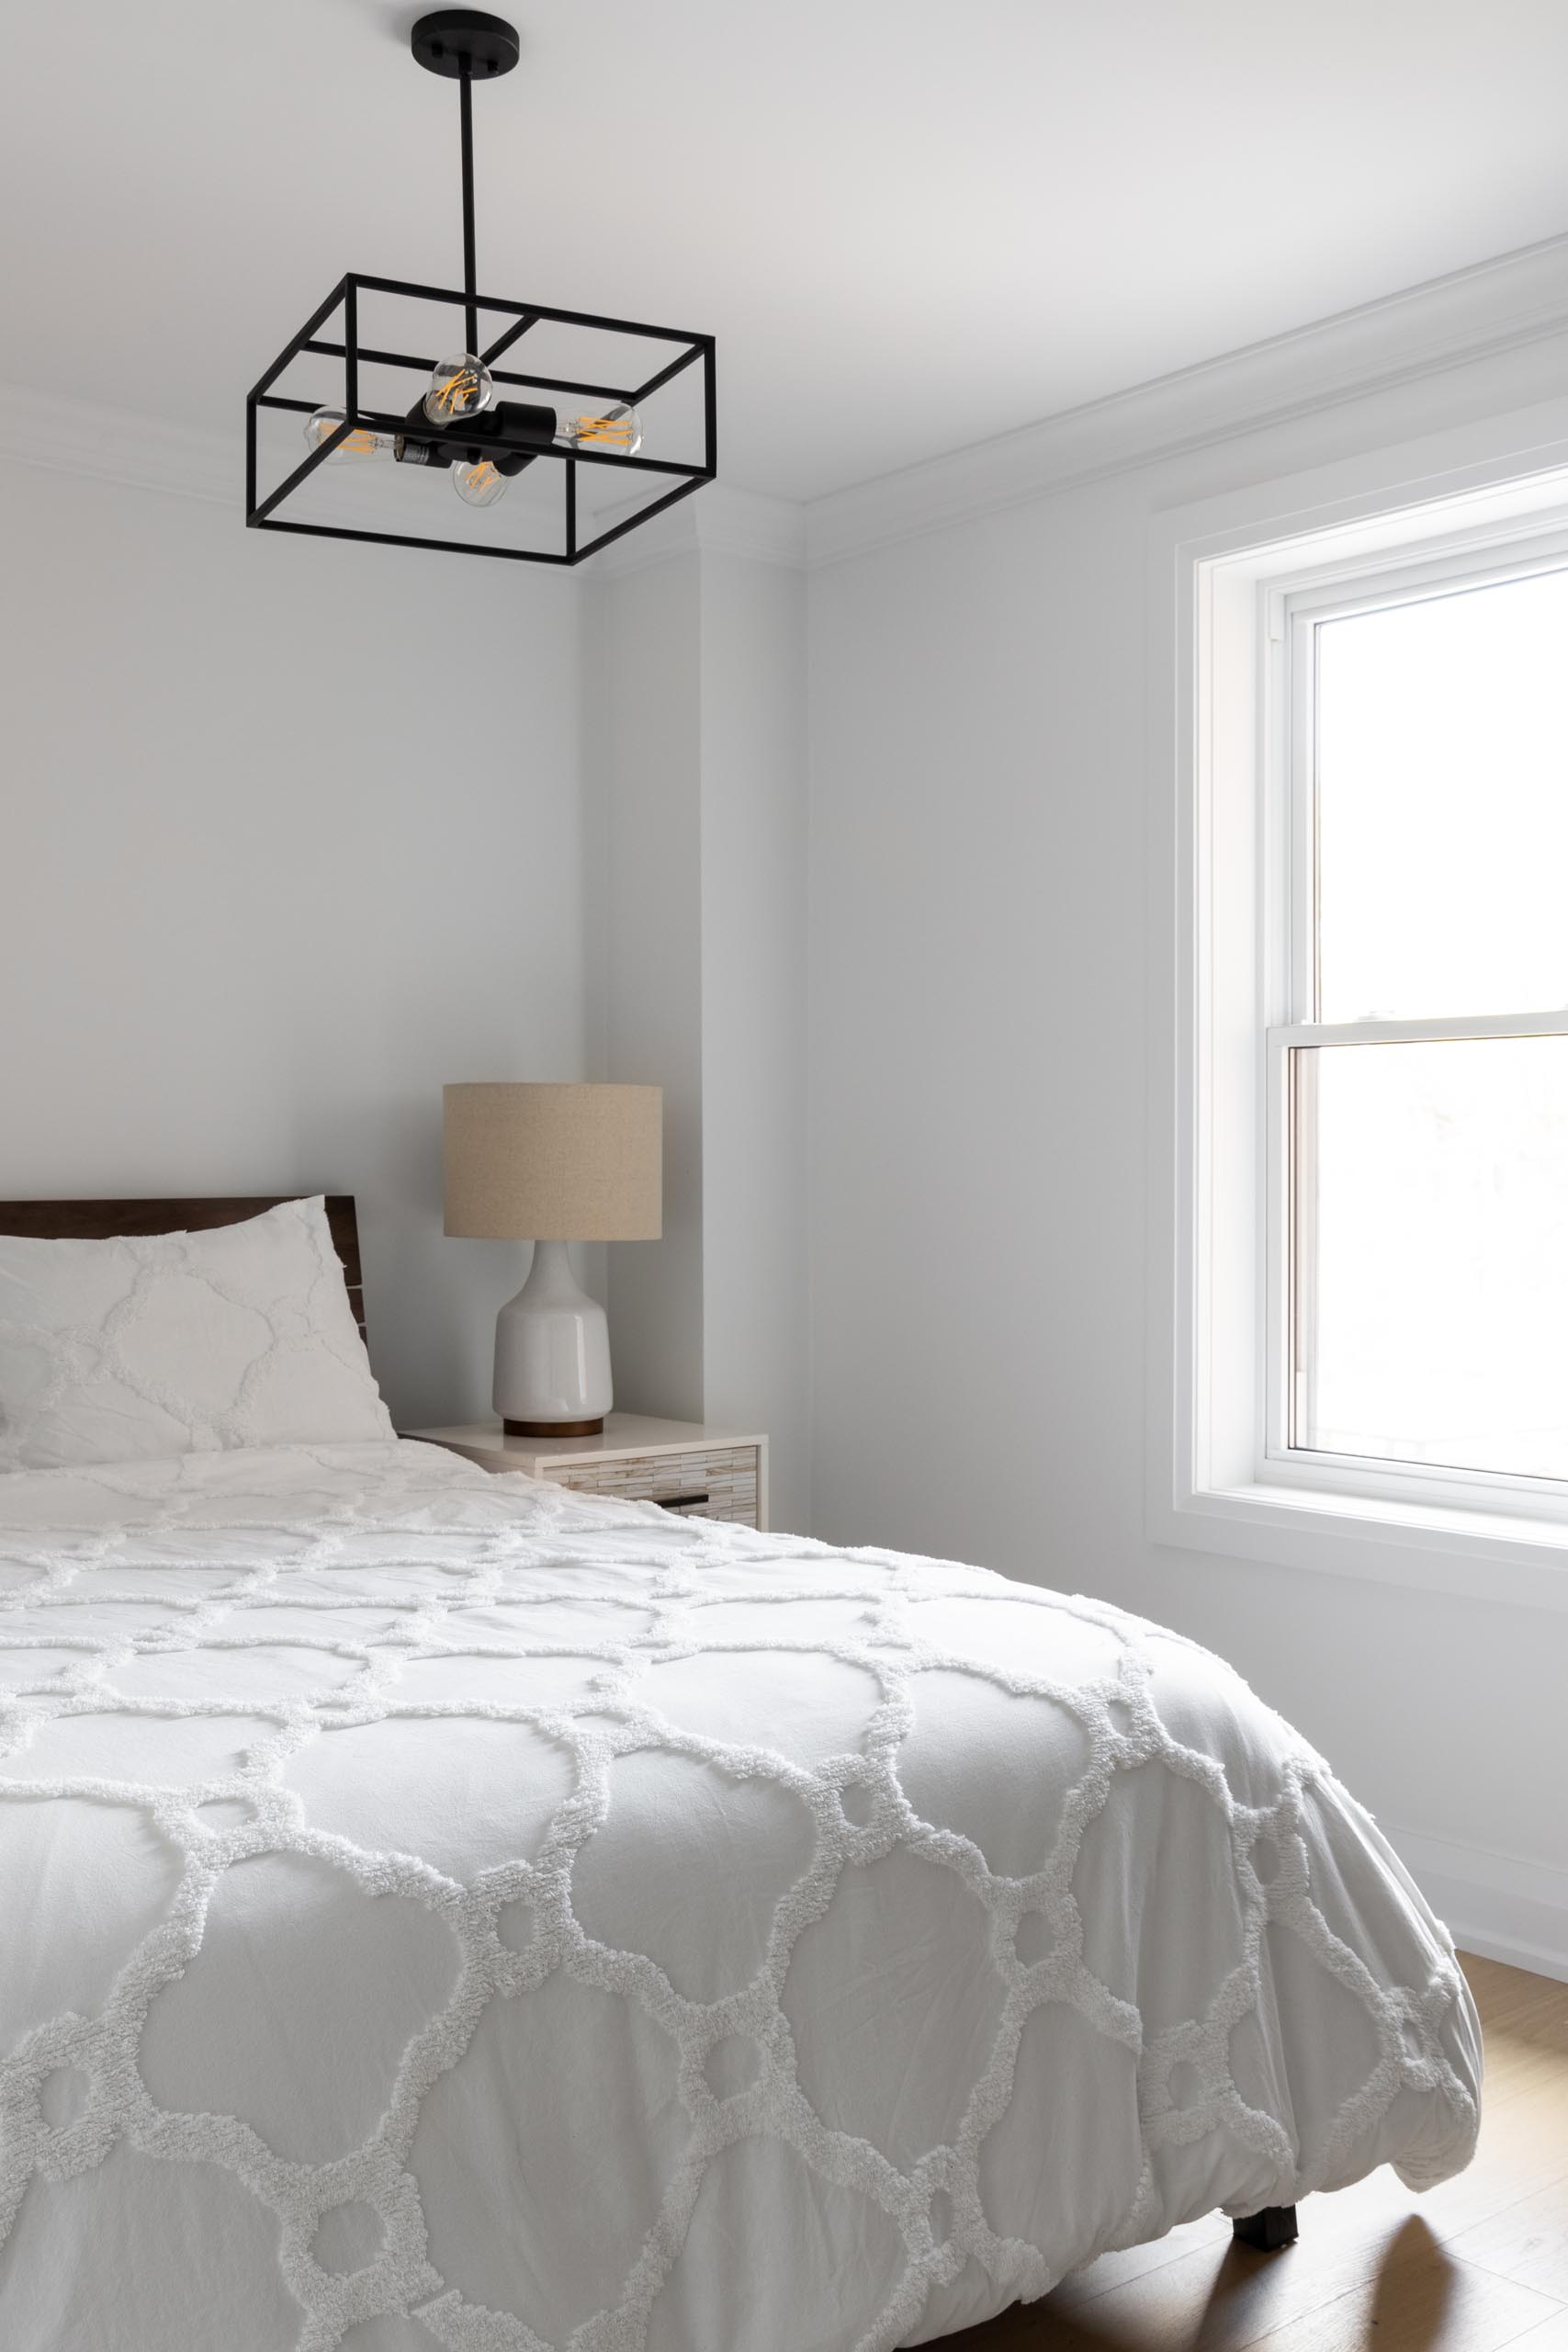 A simple contemporary bedroom design with a minimalist black light fixture that draws the eye upwards to the ceiling.